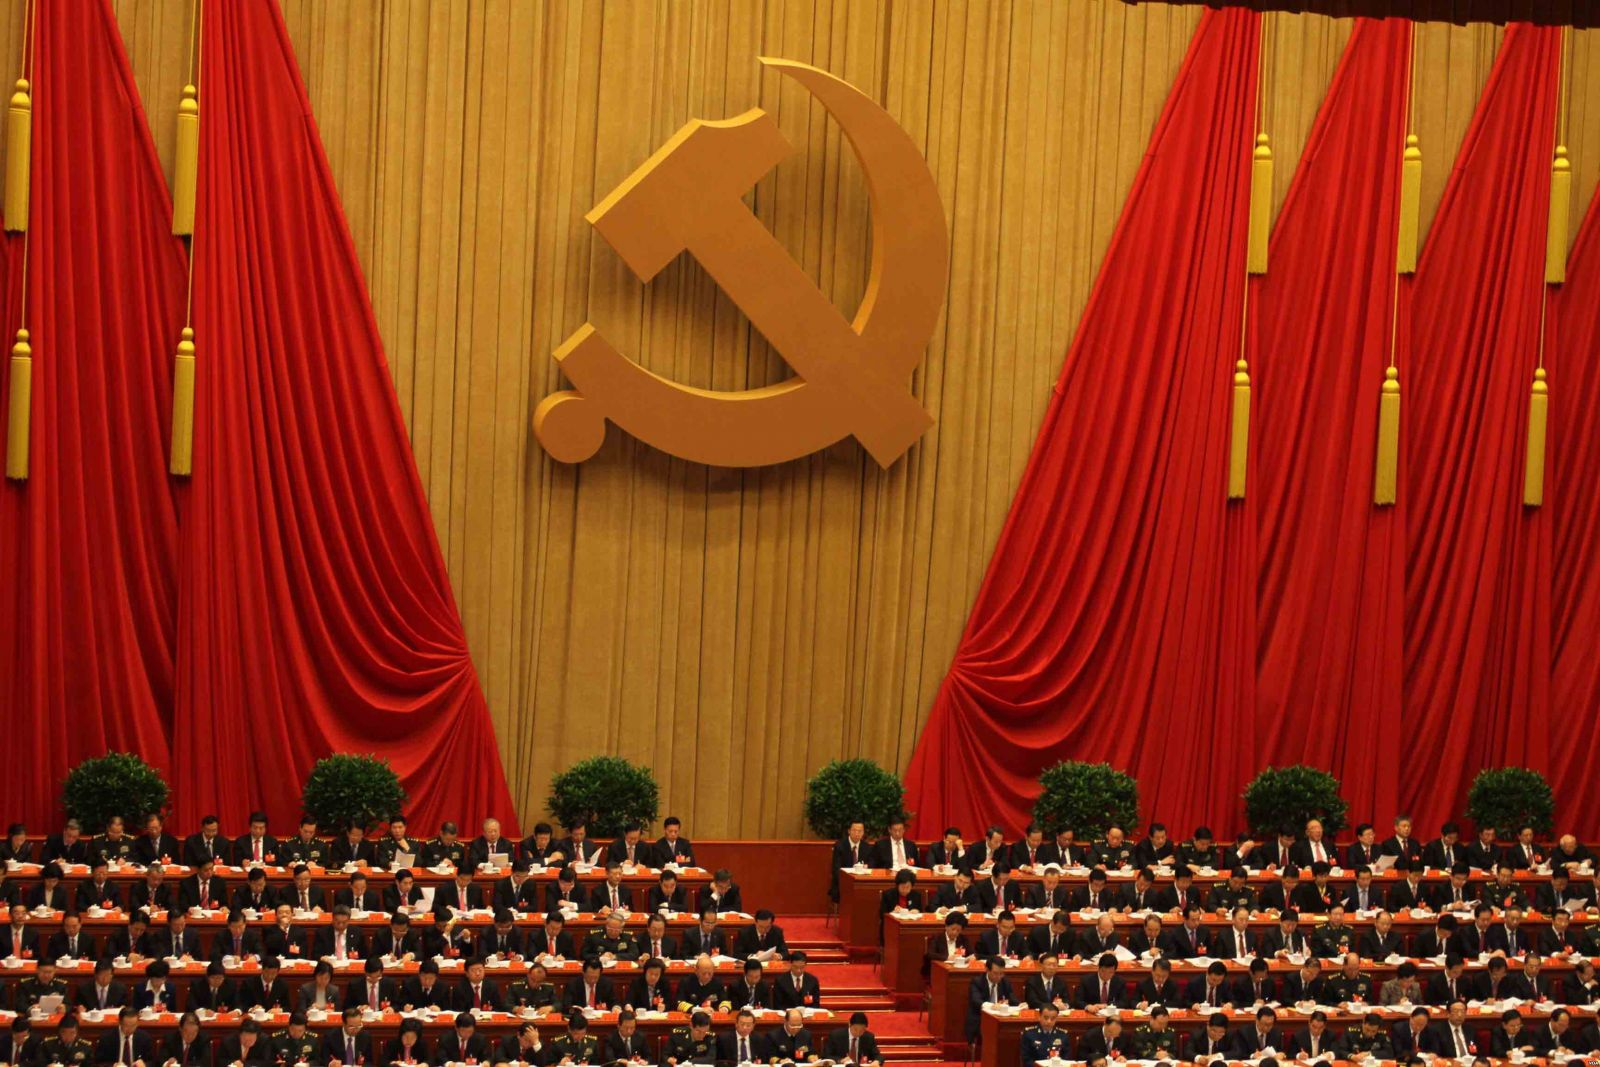 18th_National_Congress_of_the_Communist_Party_of_China.jpg